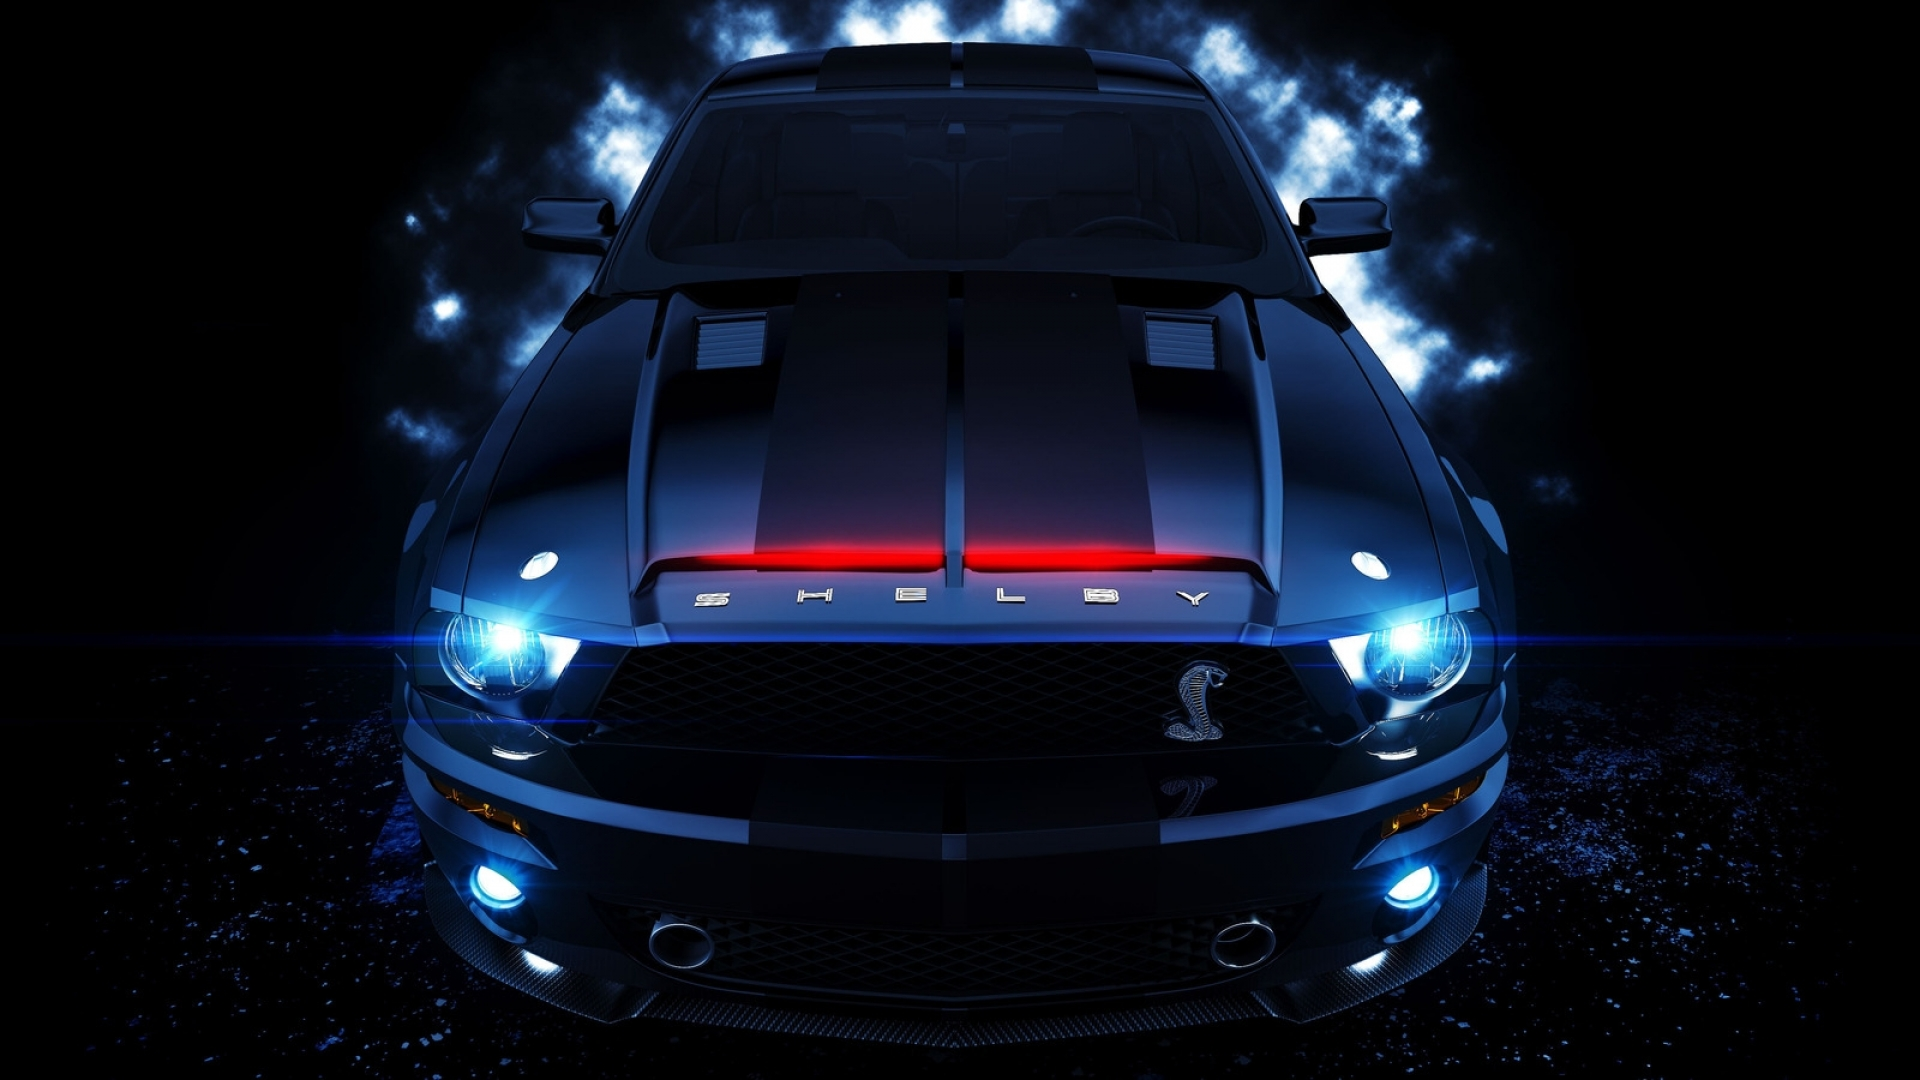 Ford Shelby F150 >> Ford Mustang Shelby GT500 Wallpapers, Pictures, Images